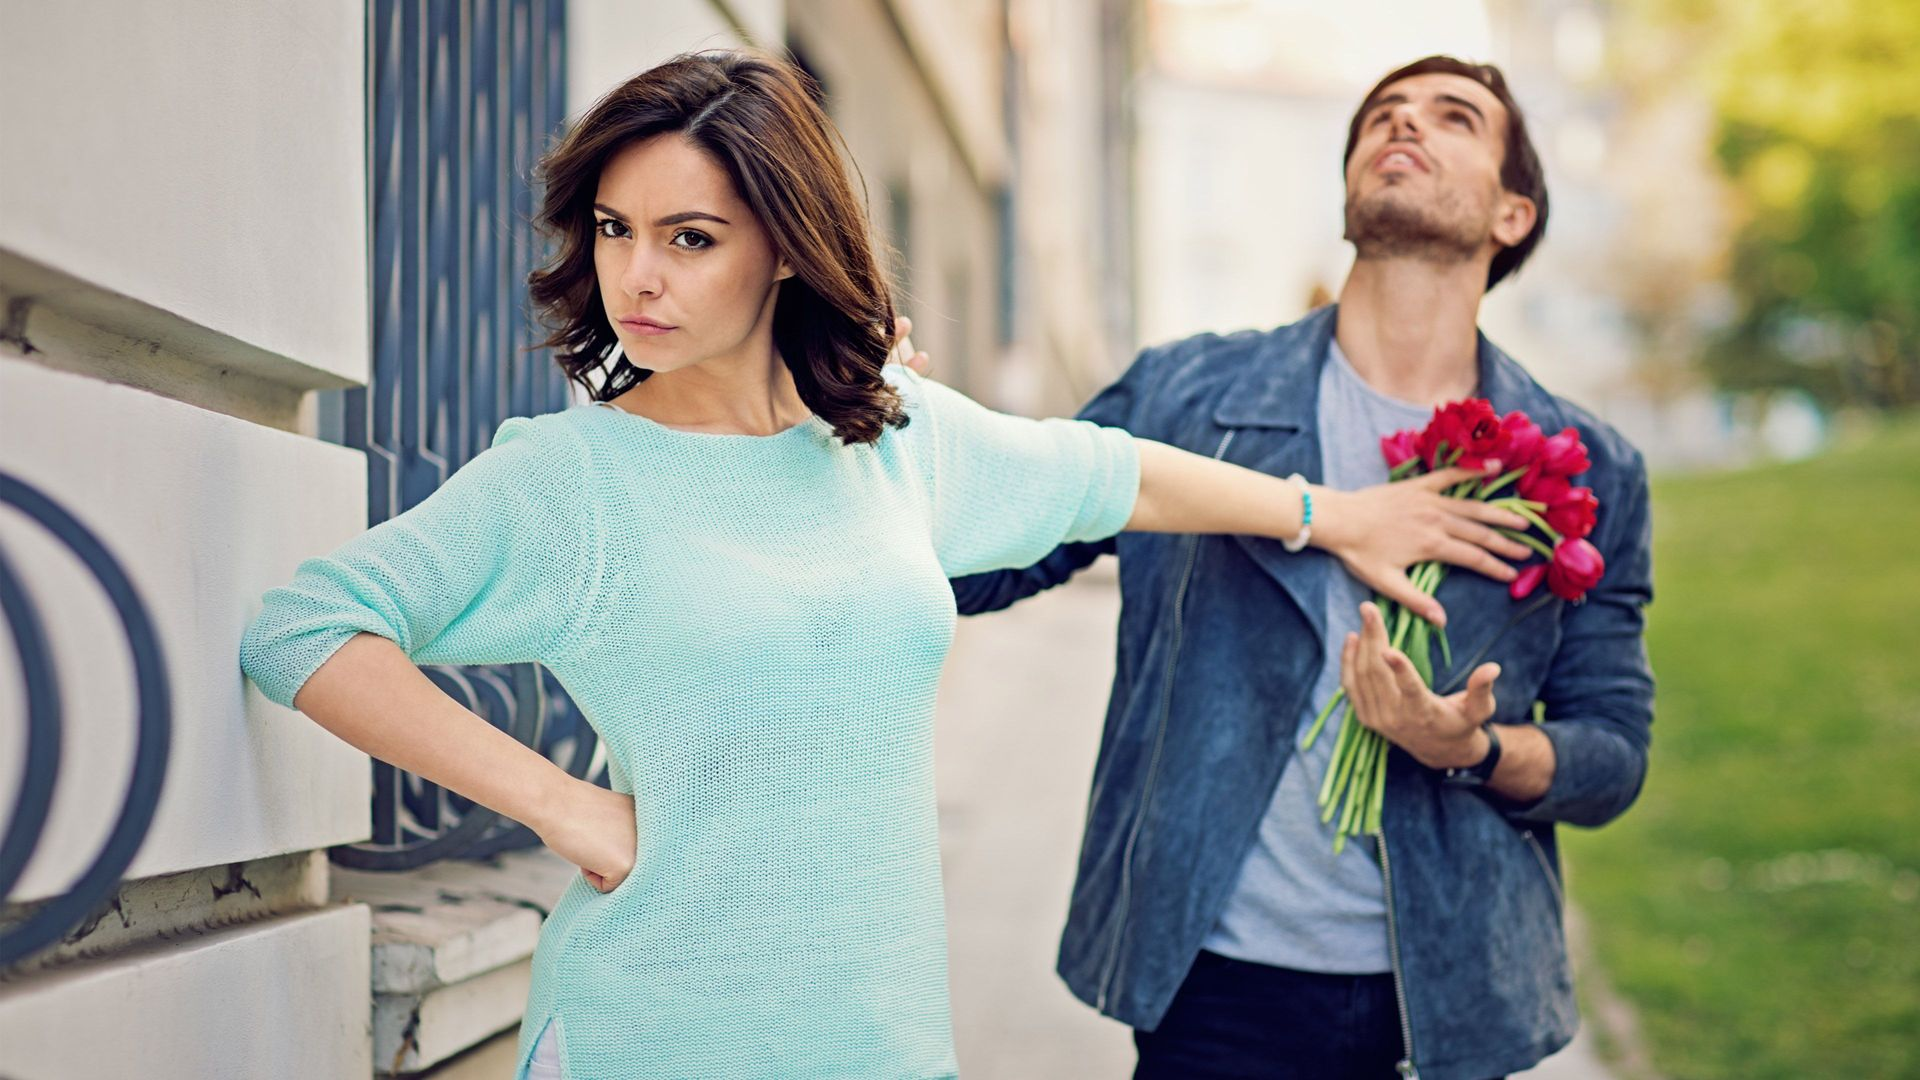 Howstuffworks: What Kind of Guy Shouldn't You Date?